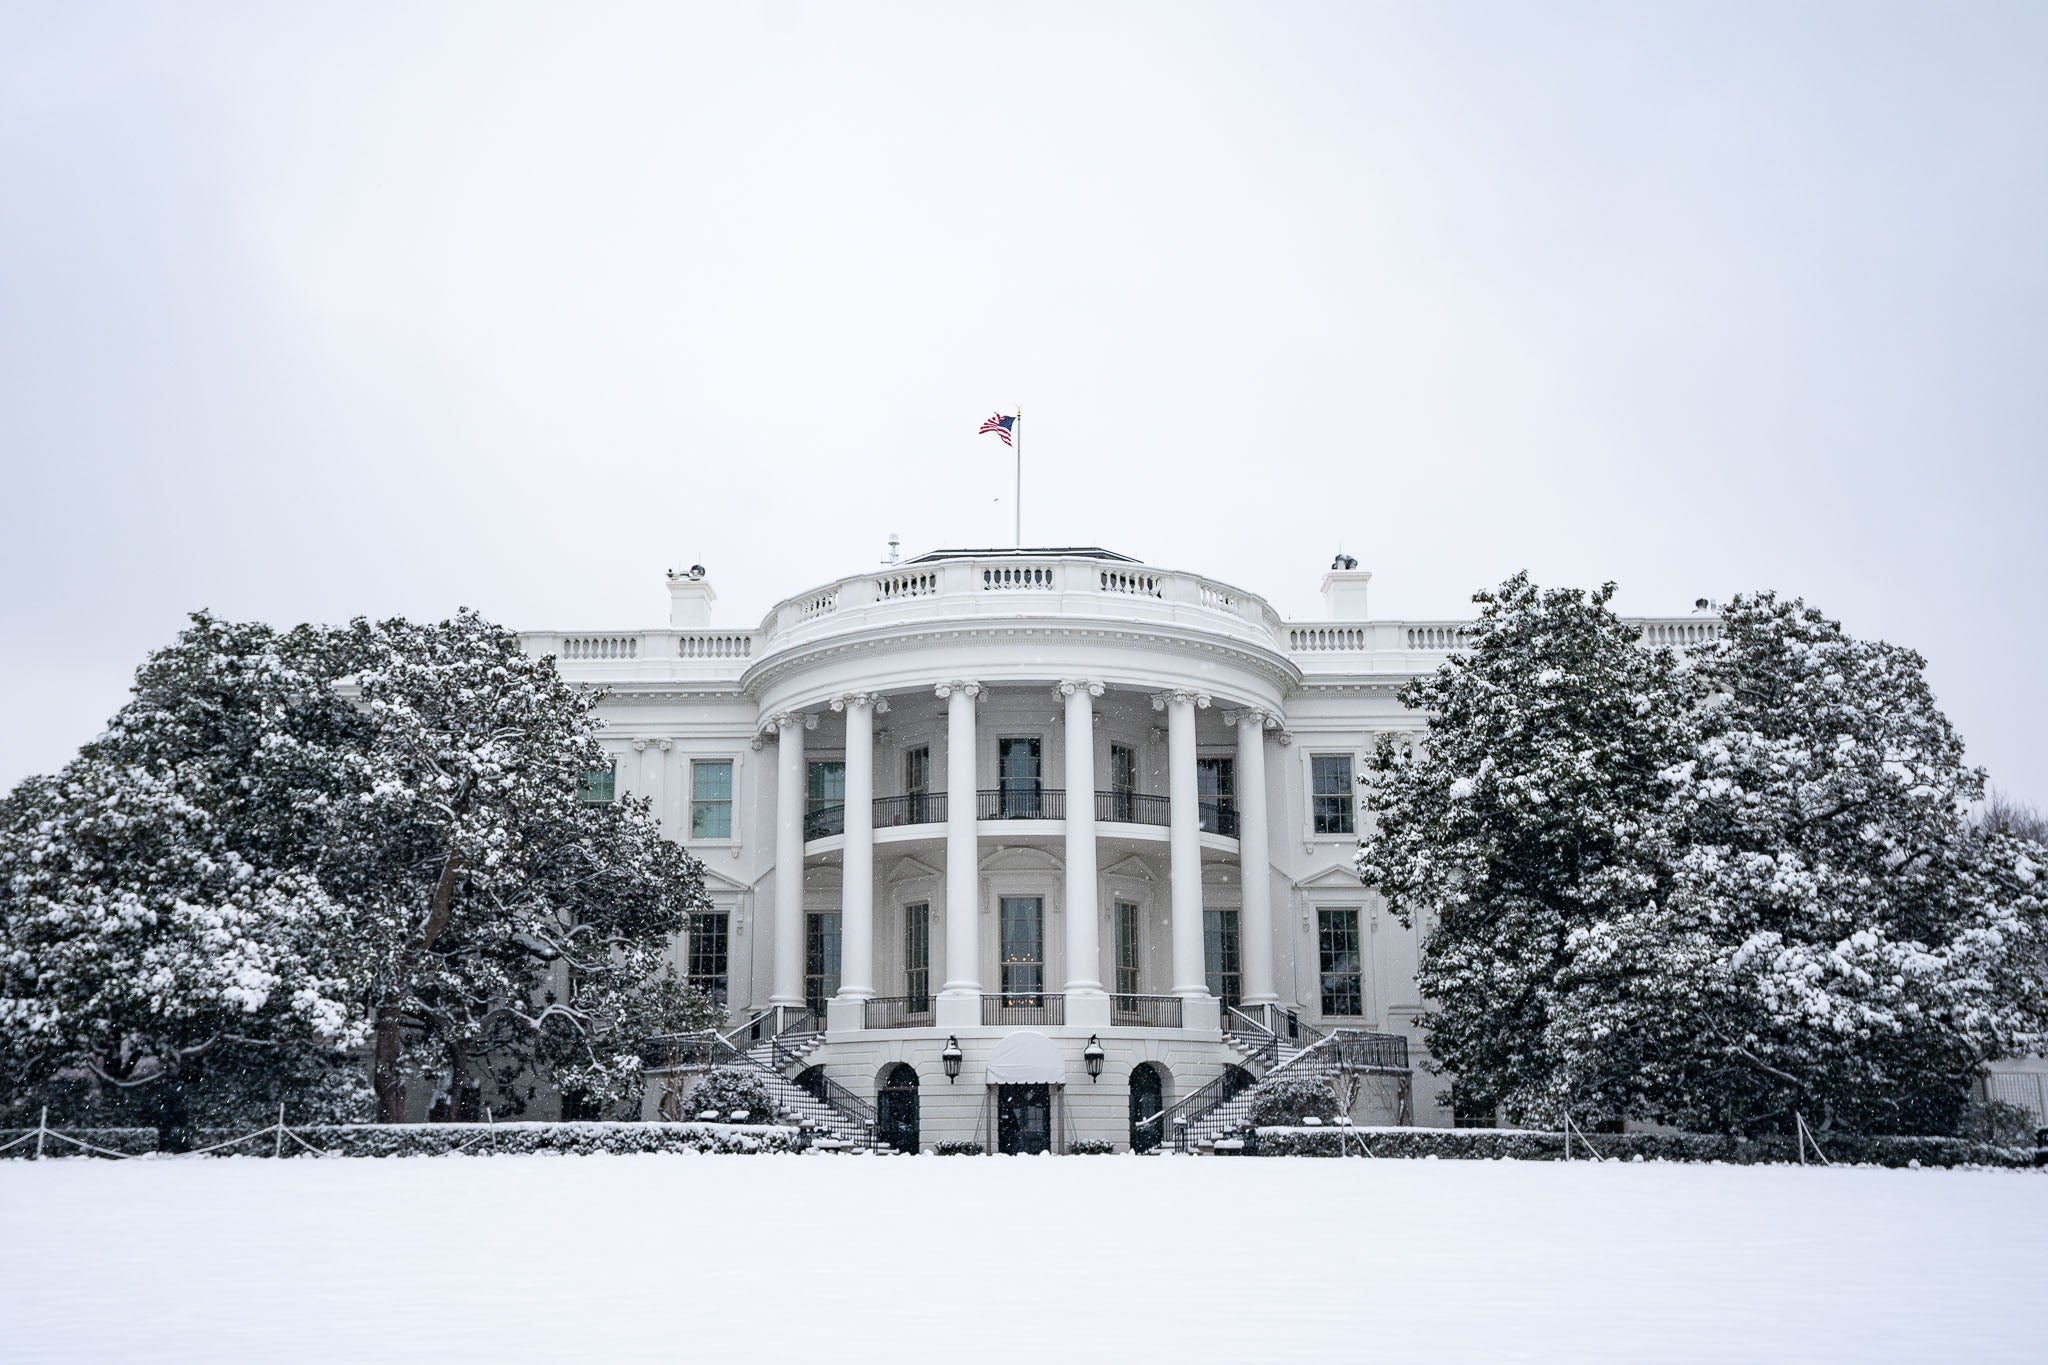 The White House covered in snow